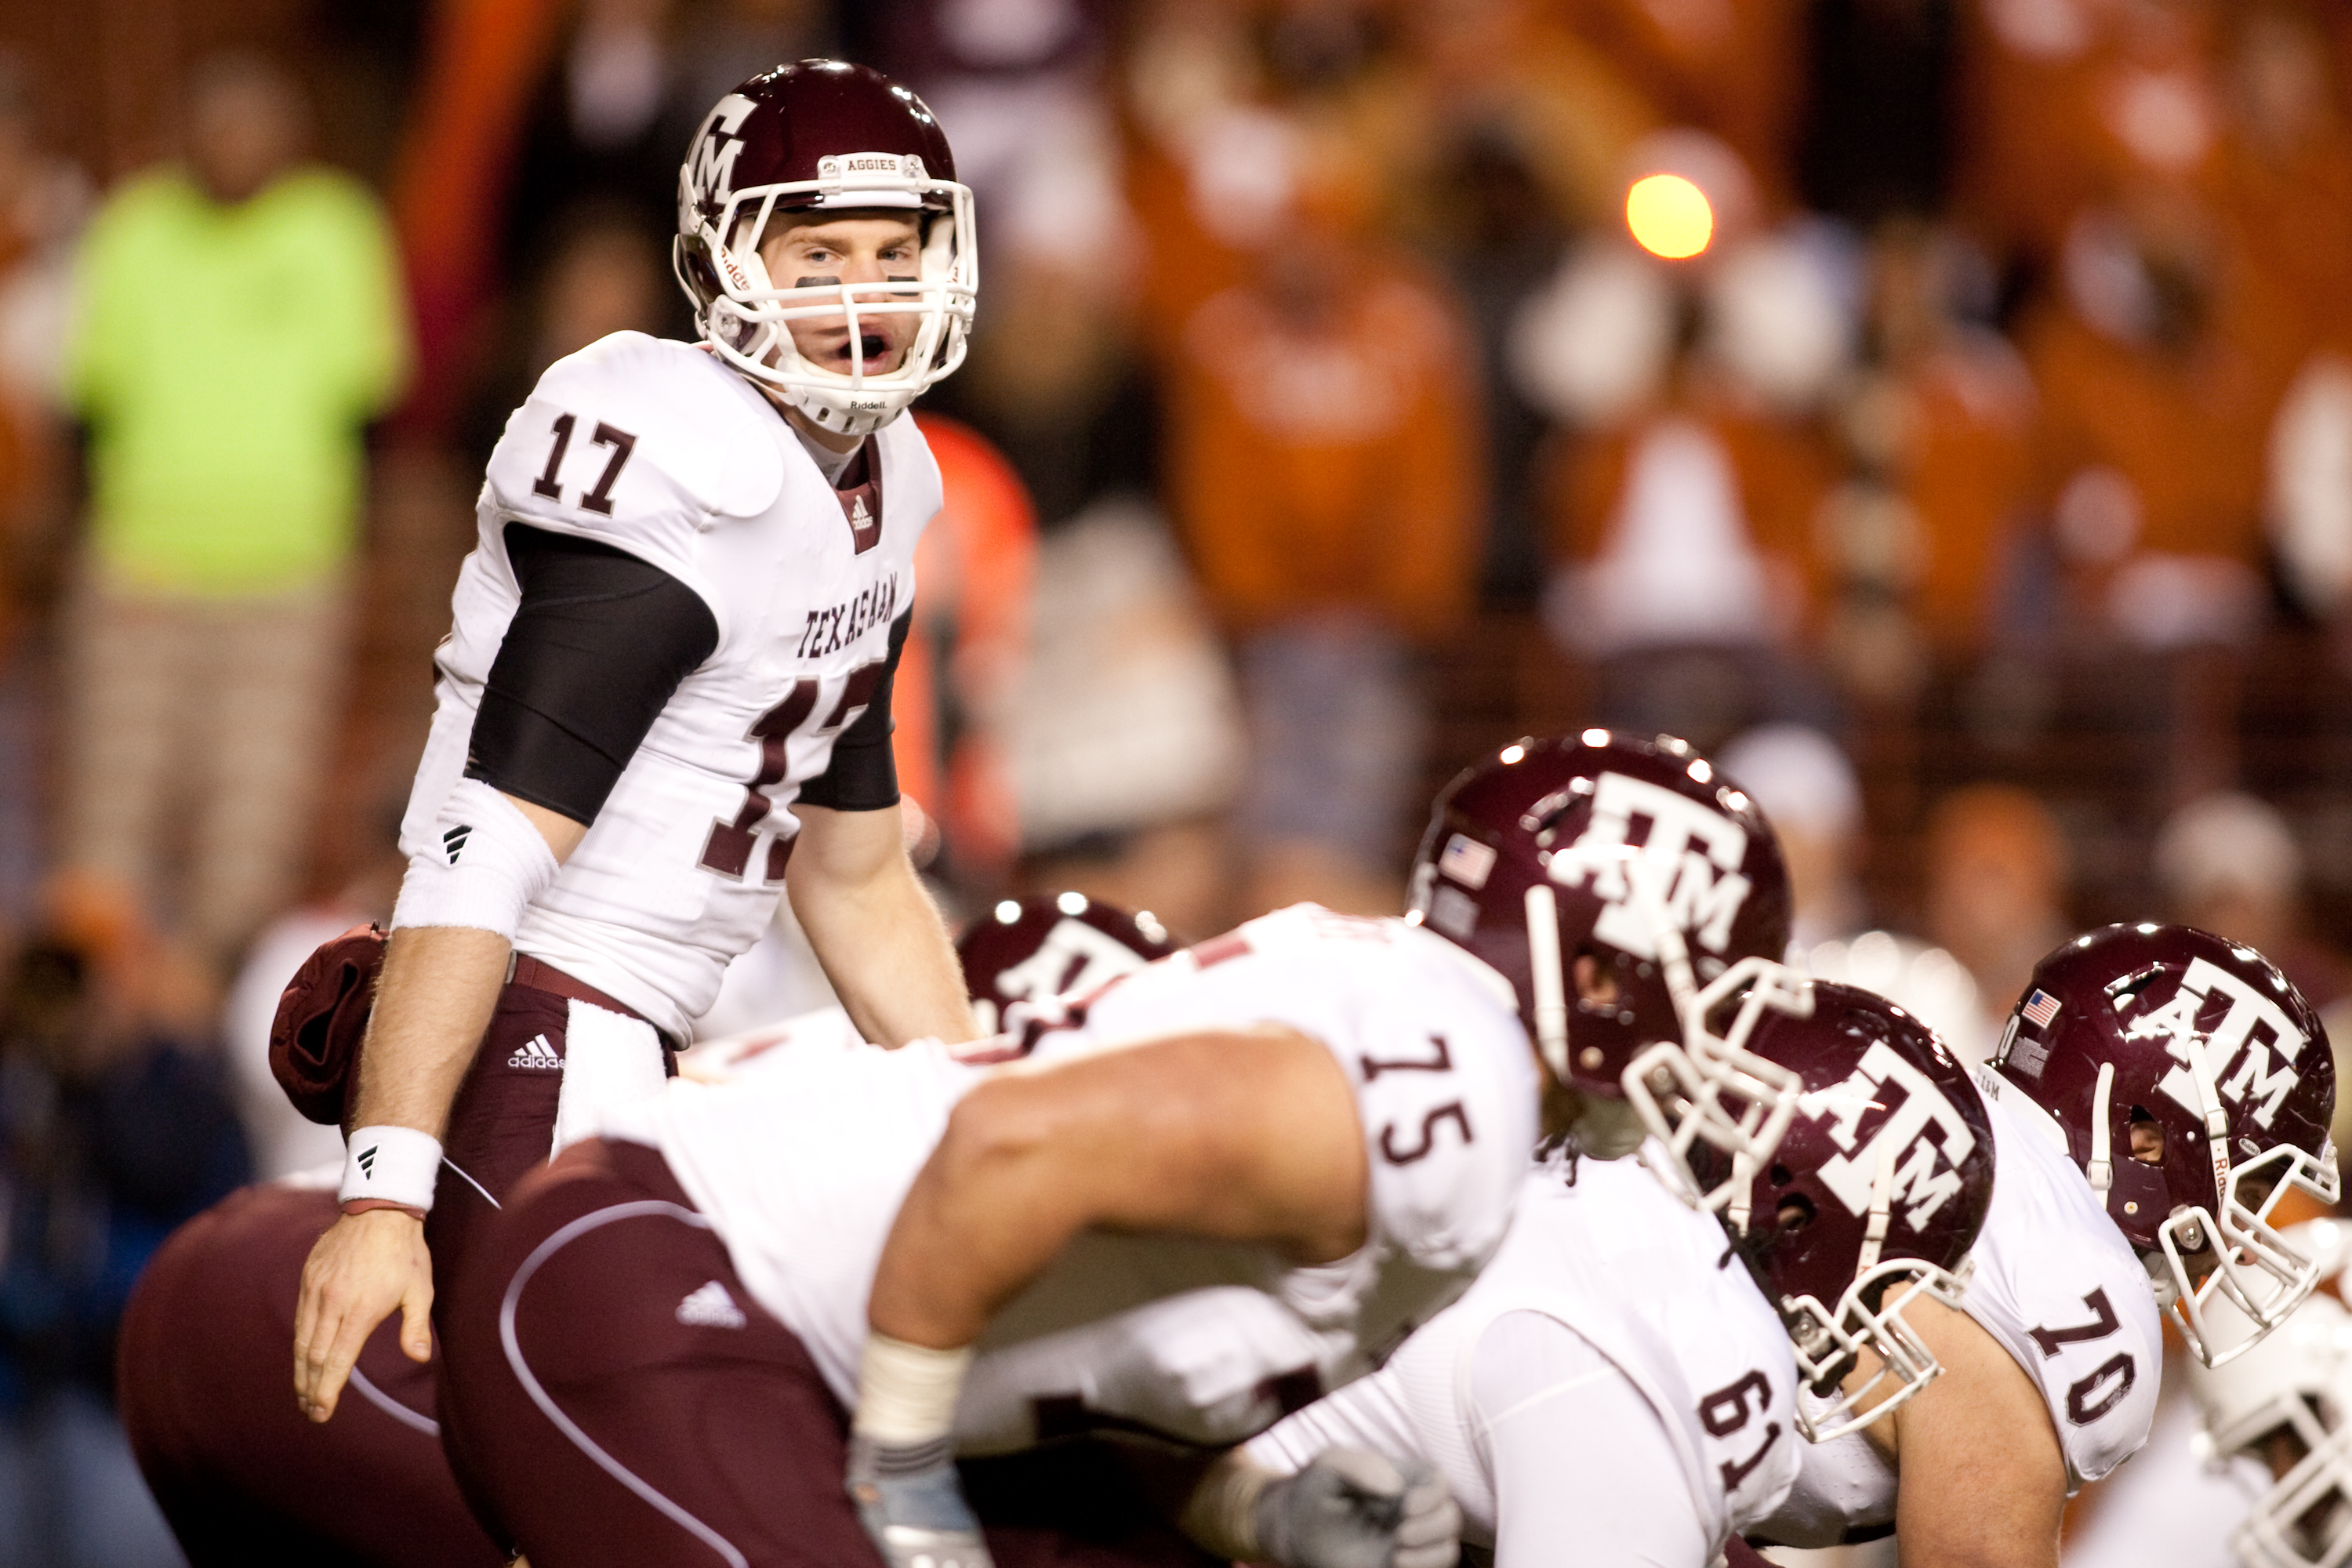 AUSTIN, TX - NOVEMBER 25:  Quarterback Ryan Tannehill #17 of Texas A&M during the game against University of Texas in the first half at Darrell K. Royal-Texas Memorial Stadium on November 25, 2010 in Austin, Texas. (Photo by Darren Carroll/Getty Images)